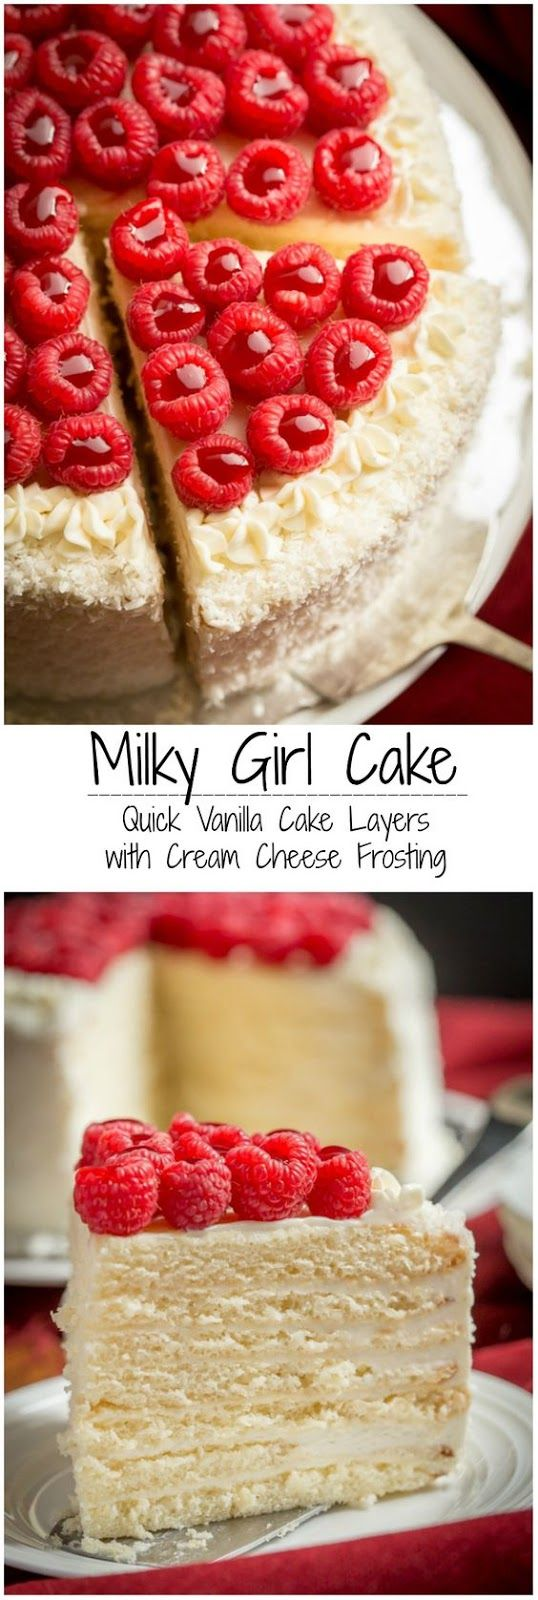 Milky Girl Cake | Food And Cake Recipes